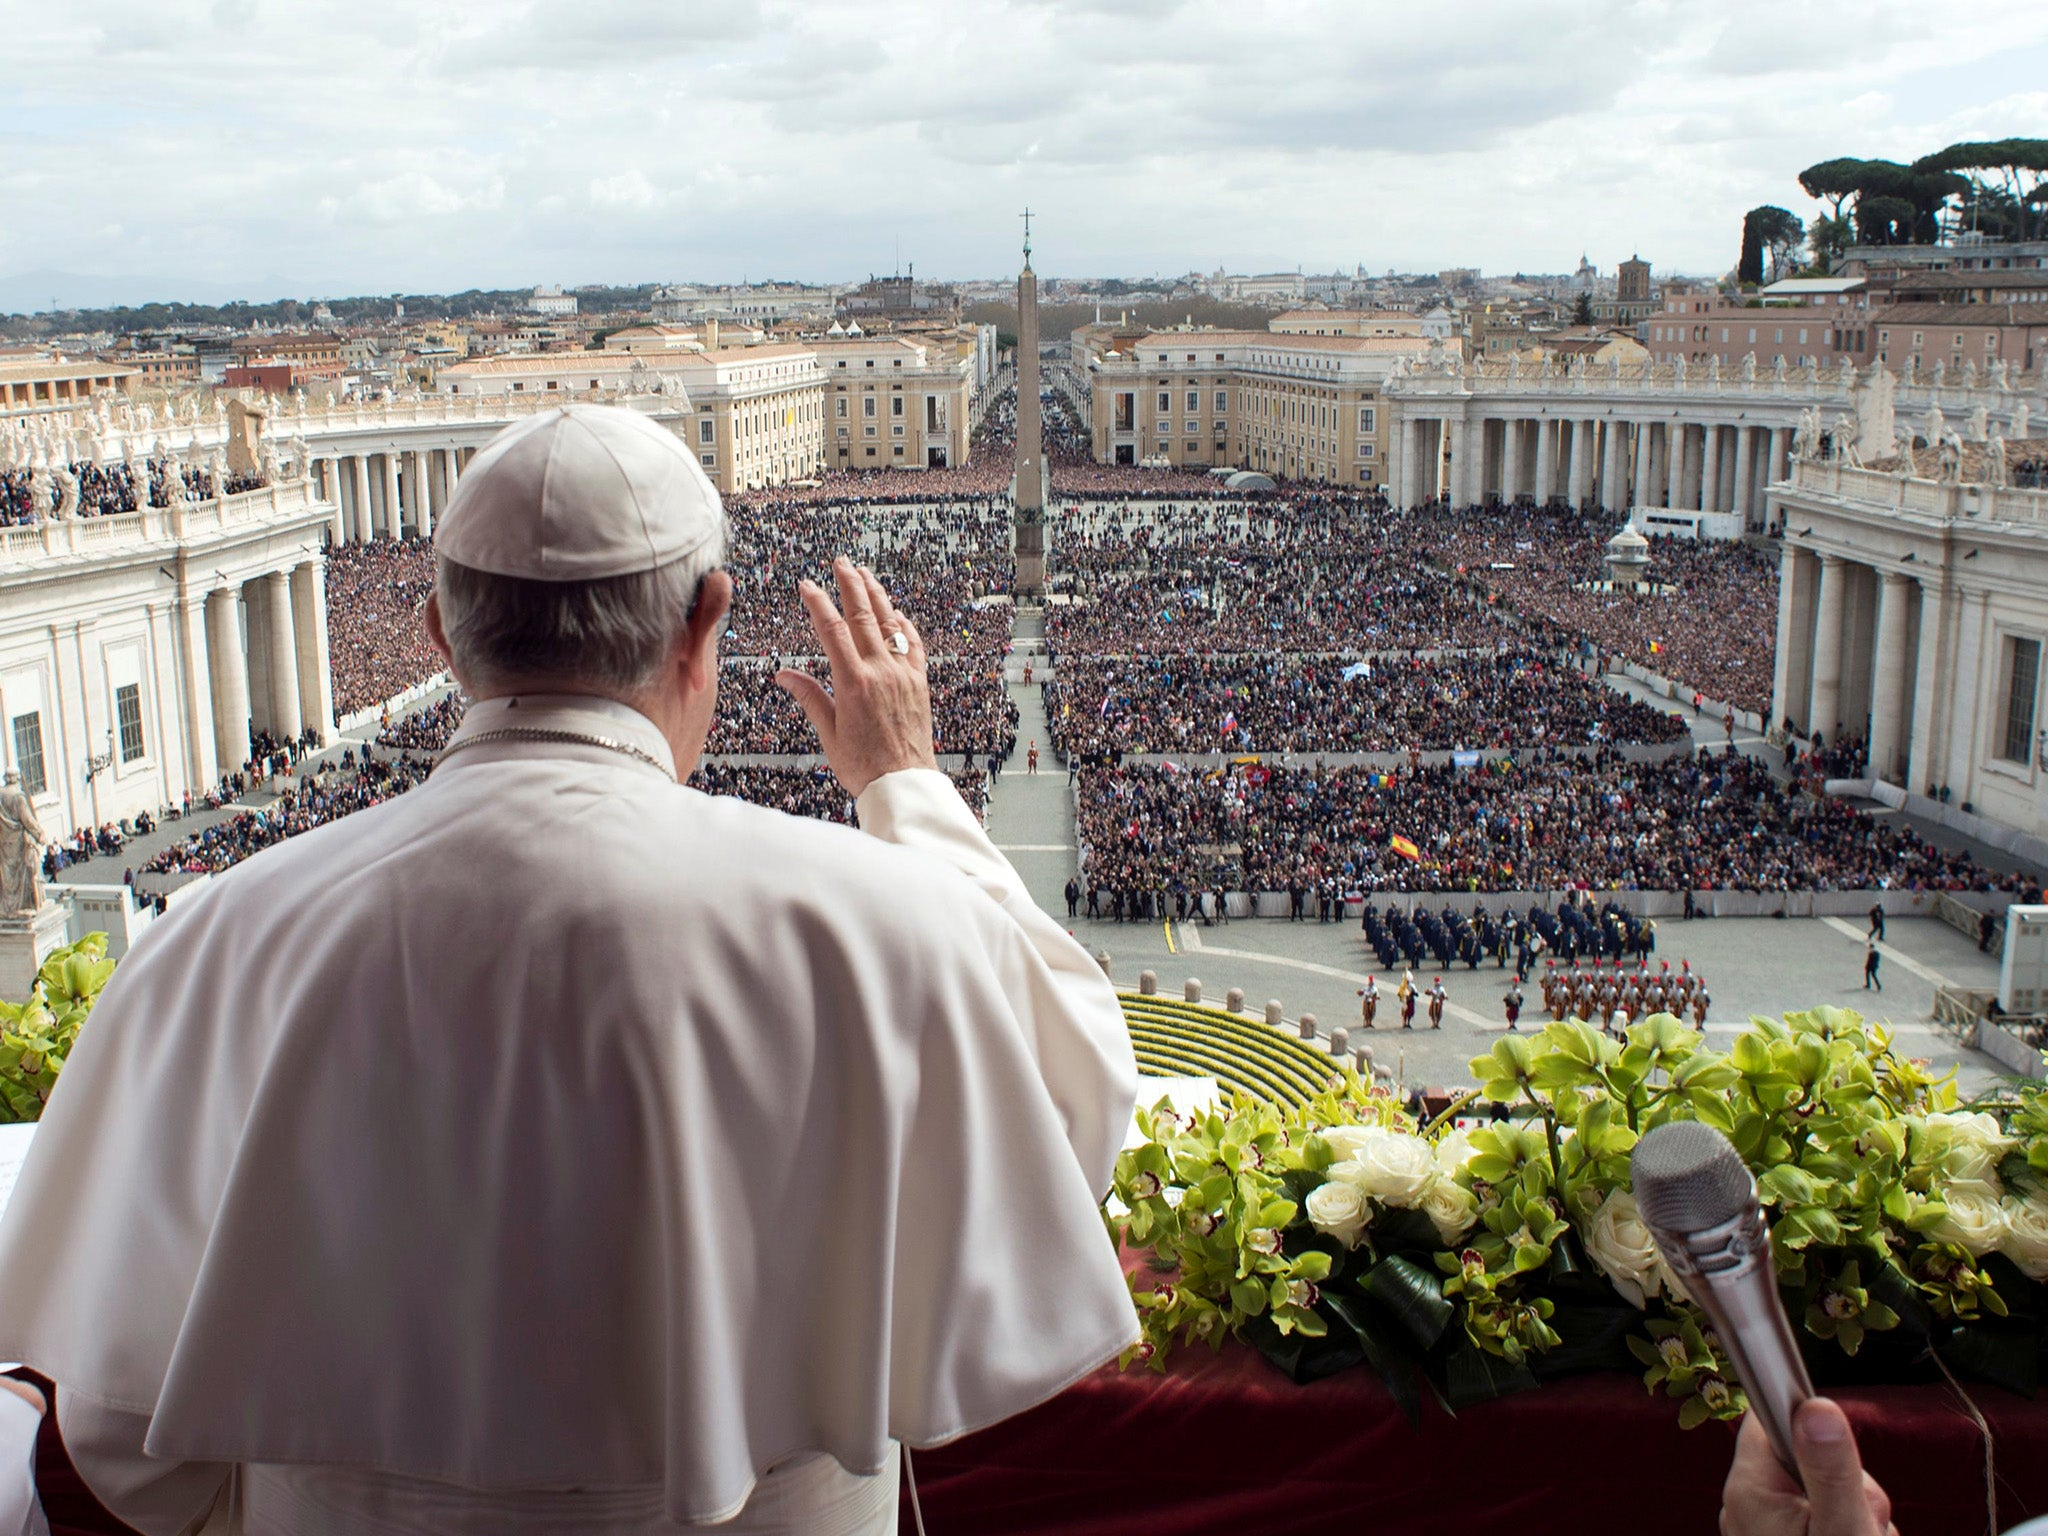 Vatican: Form of Government and Government